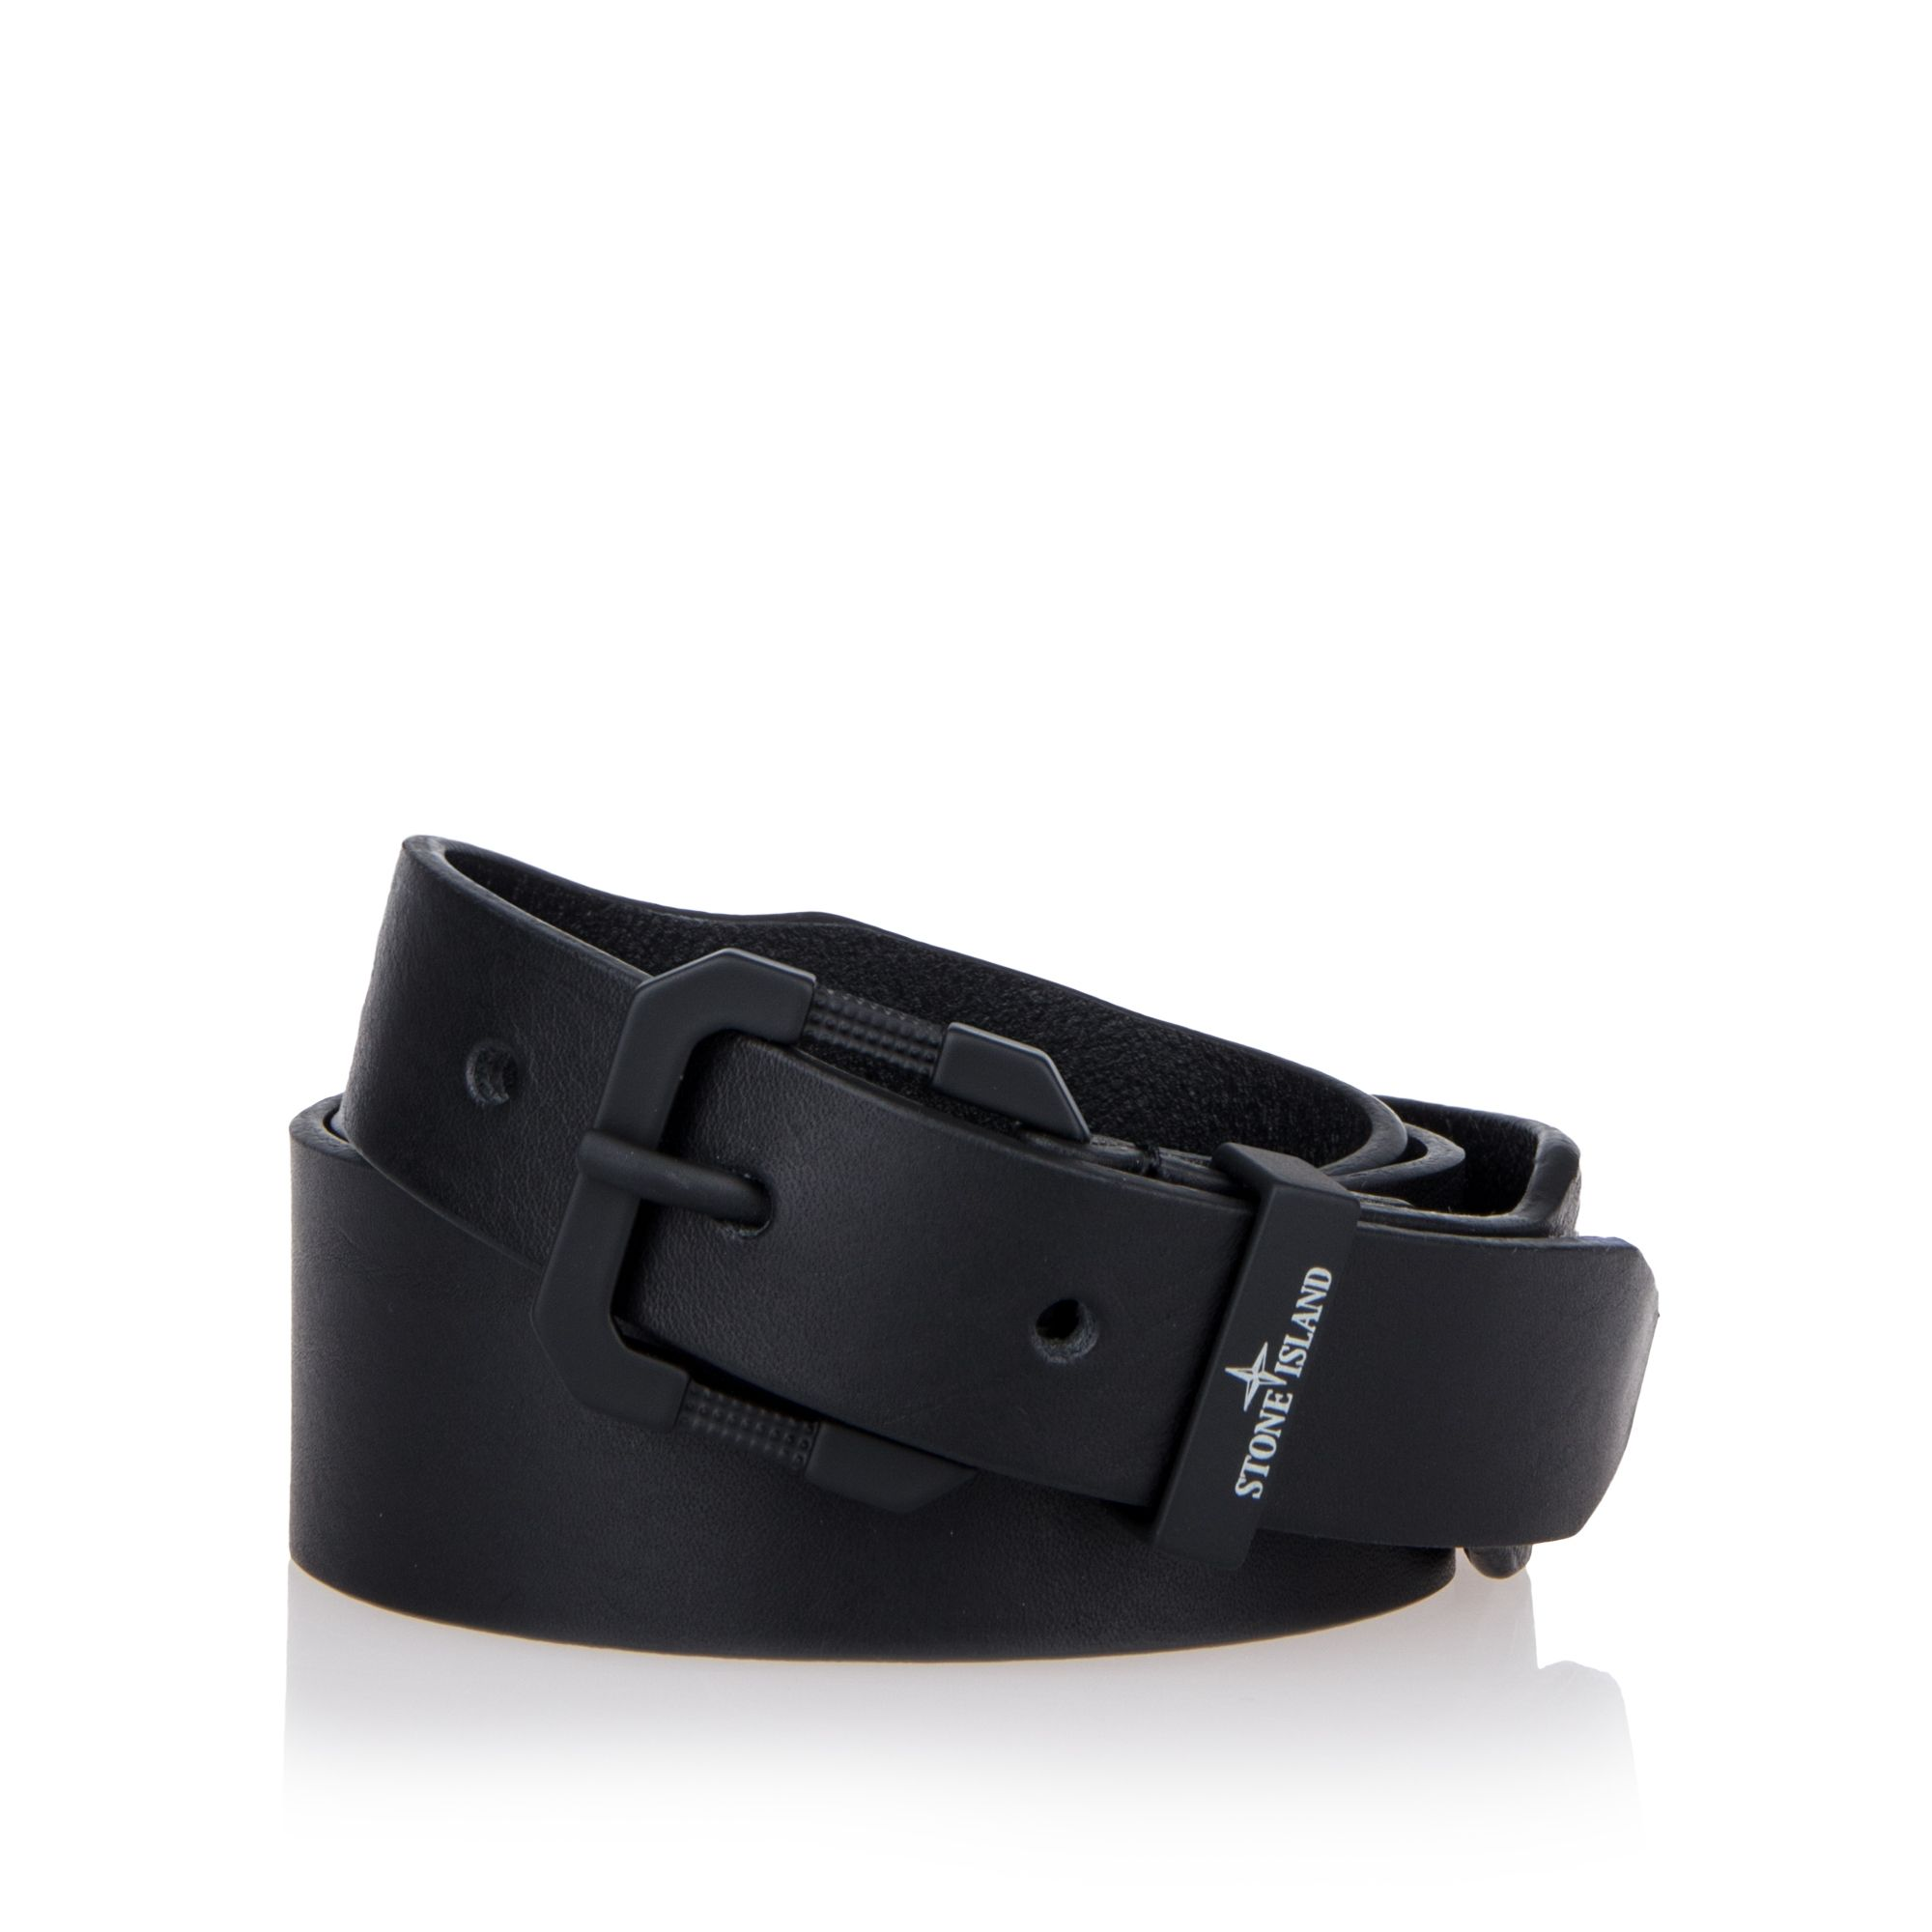 98903fc12 Boys Leather Logo Belt - Black | accessories | Belt, Black leather ...